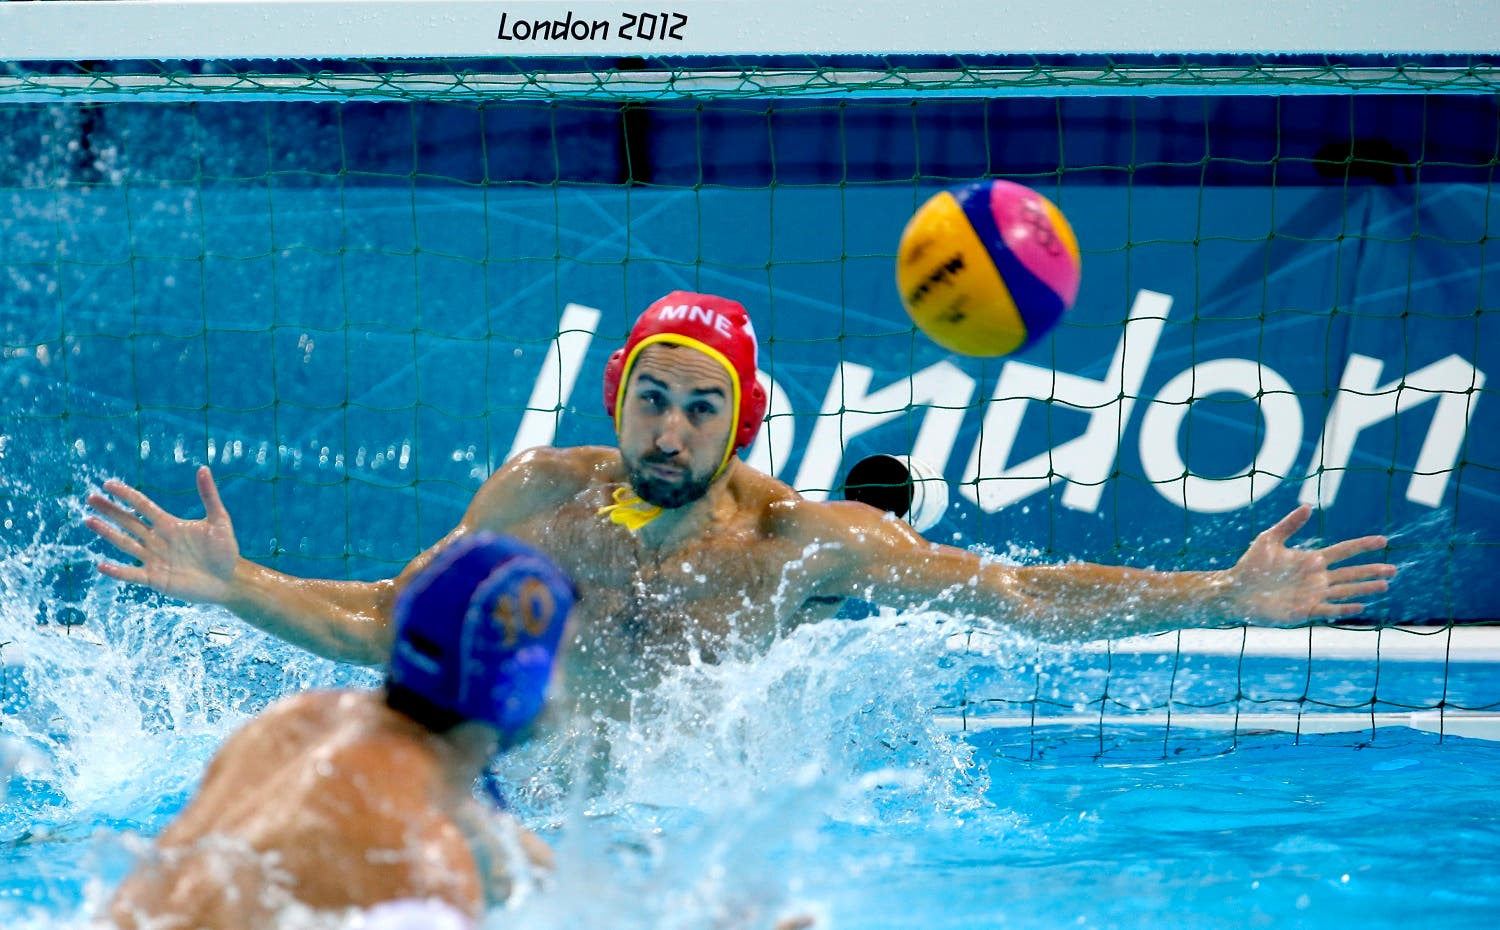 Serbia's Filip Filipovic, bottom, scores on a penalty against Montenegro goalkeeper Milos Scepanovic during the men's water polo bronze medal match at the 2012 Summer Olympics, Sunday, Aug. 12, 2012, in London. (AP